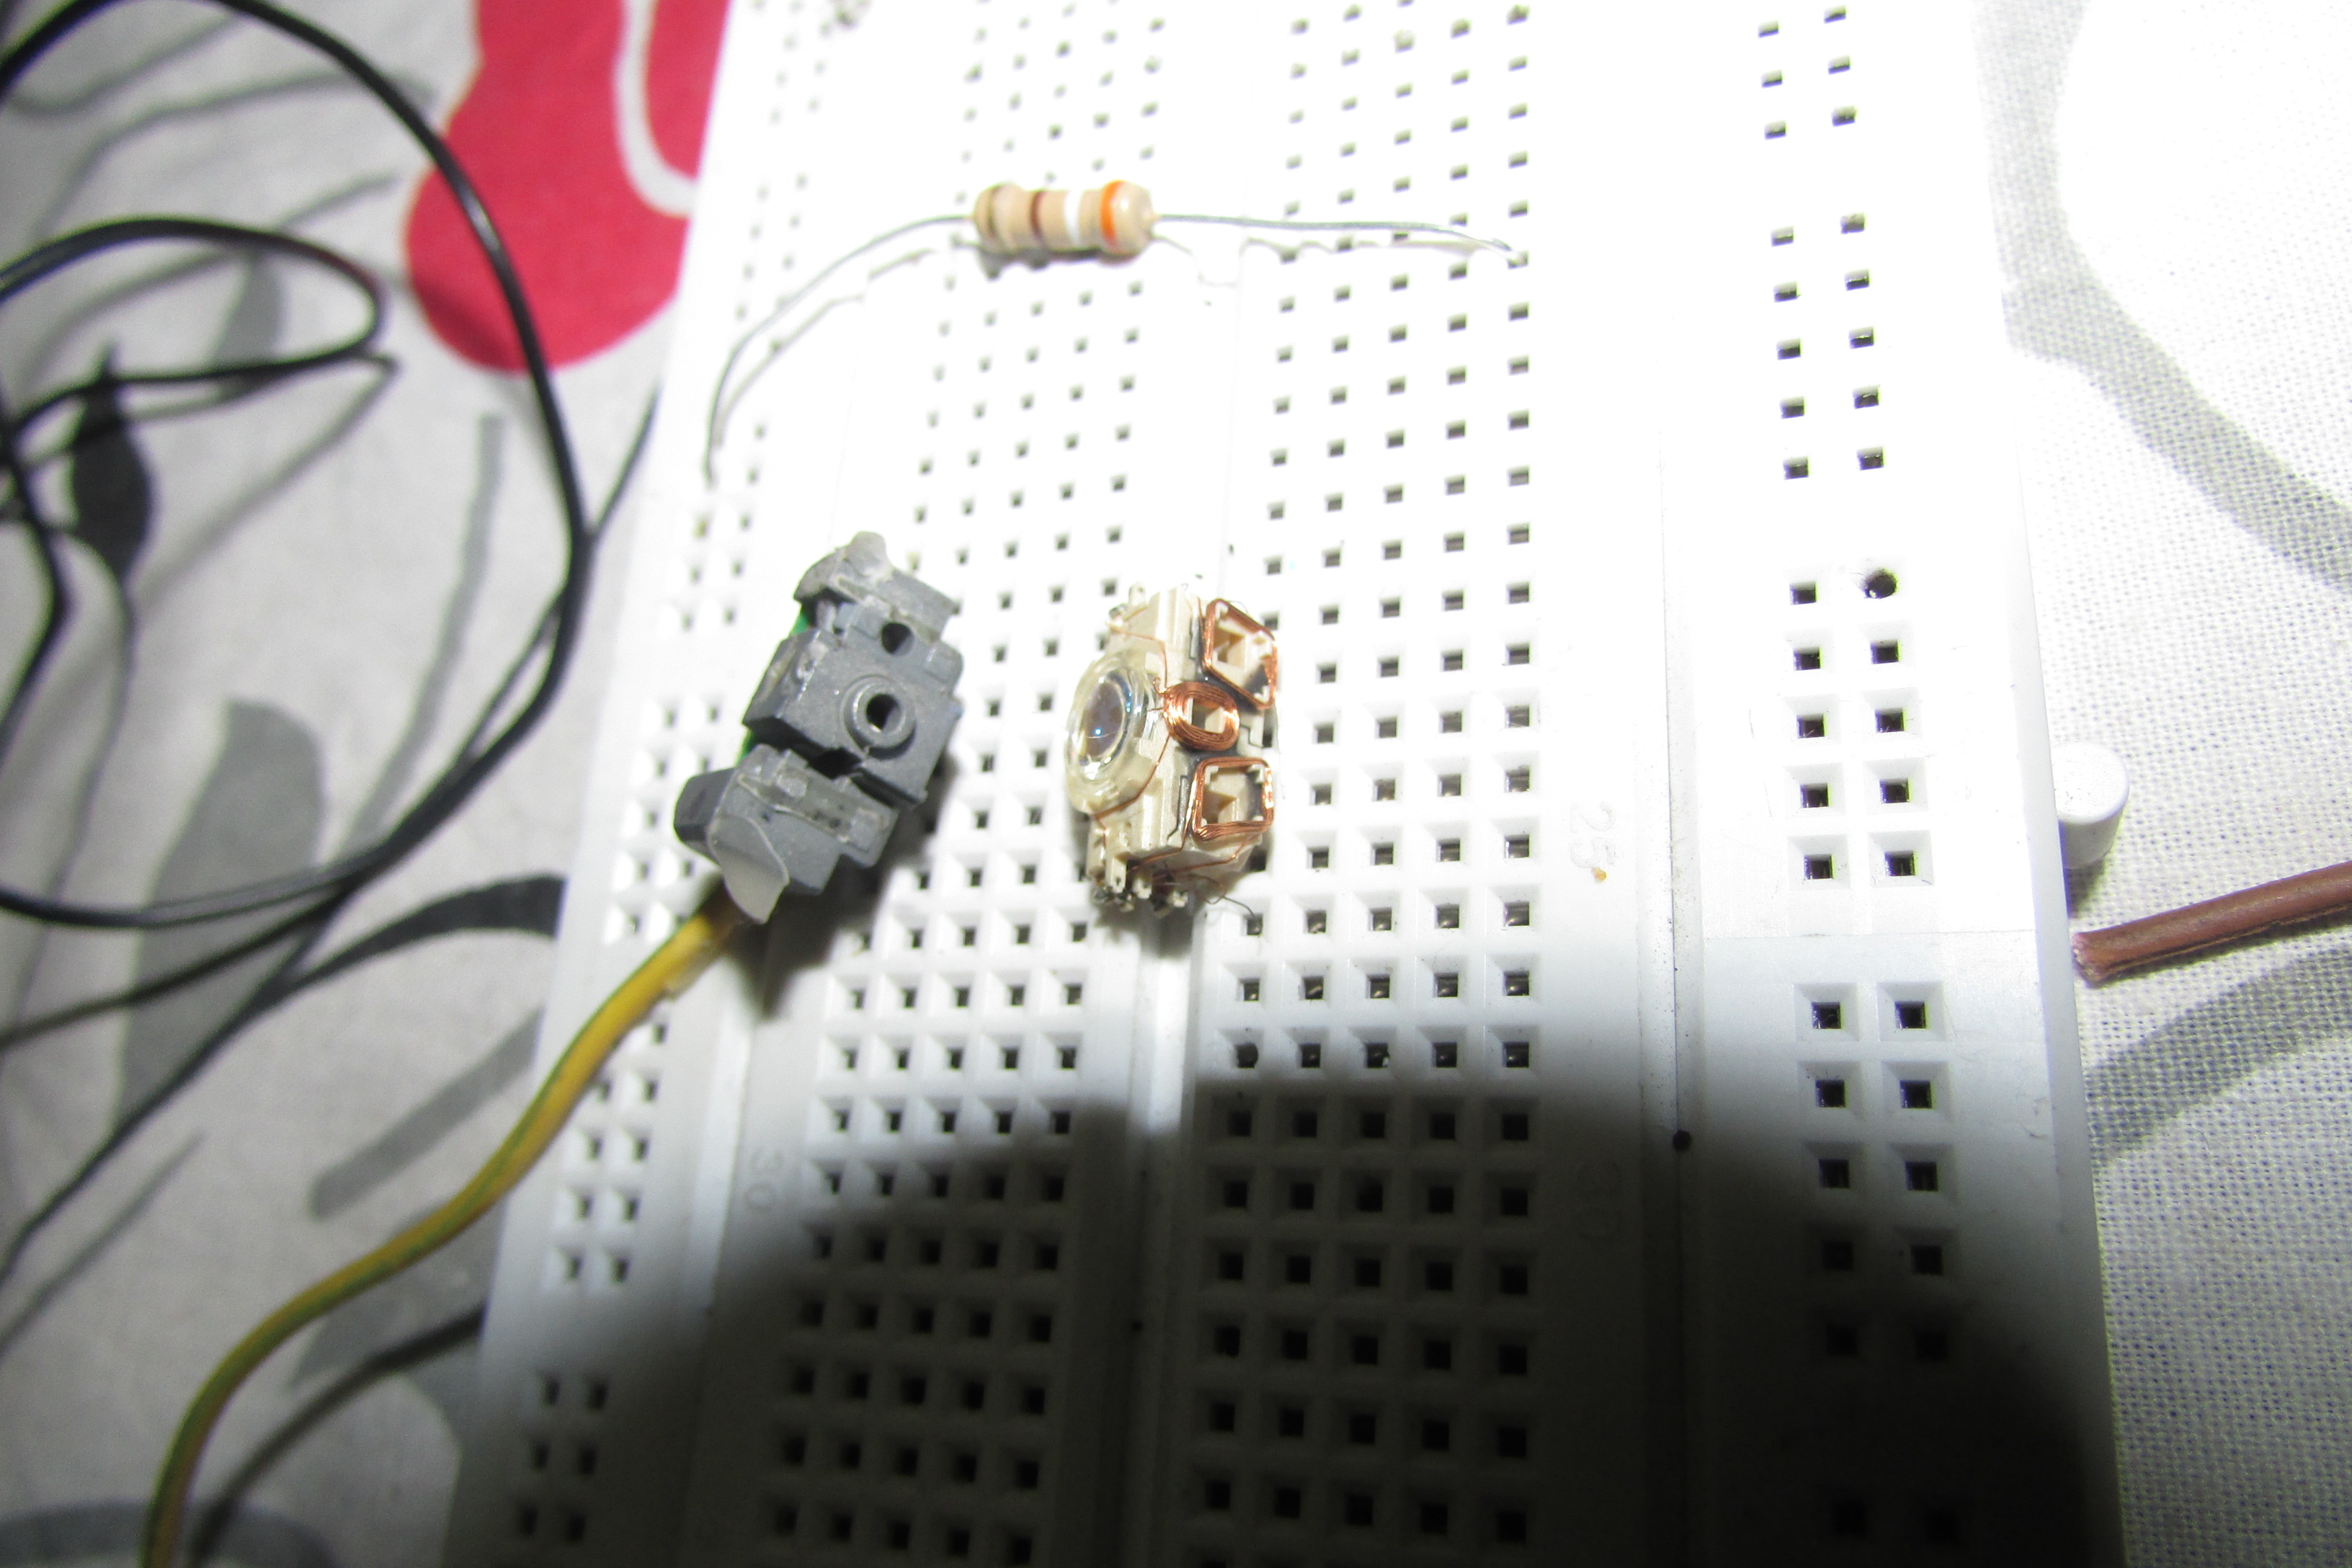 Picture of The IR Laser Diode From Old DVD Burner